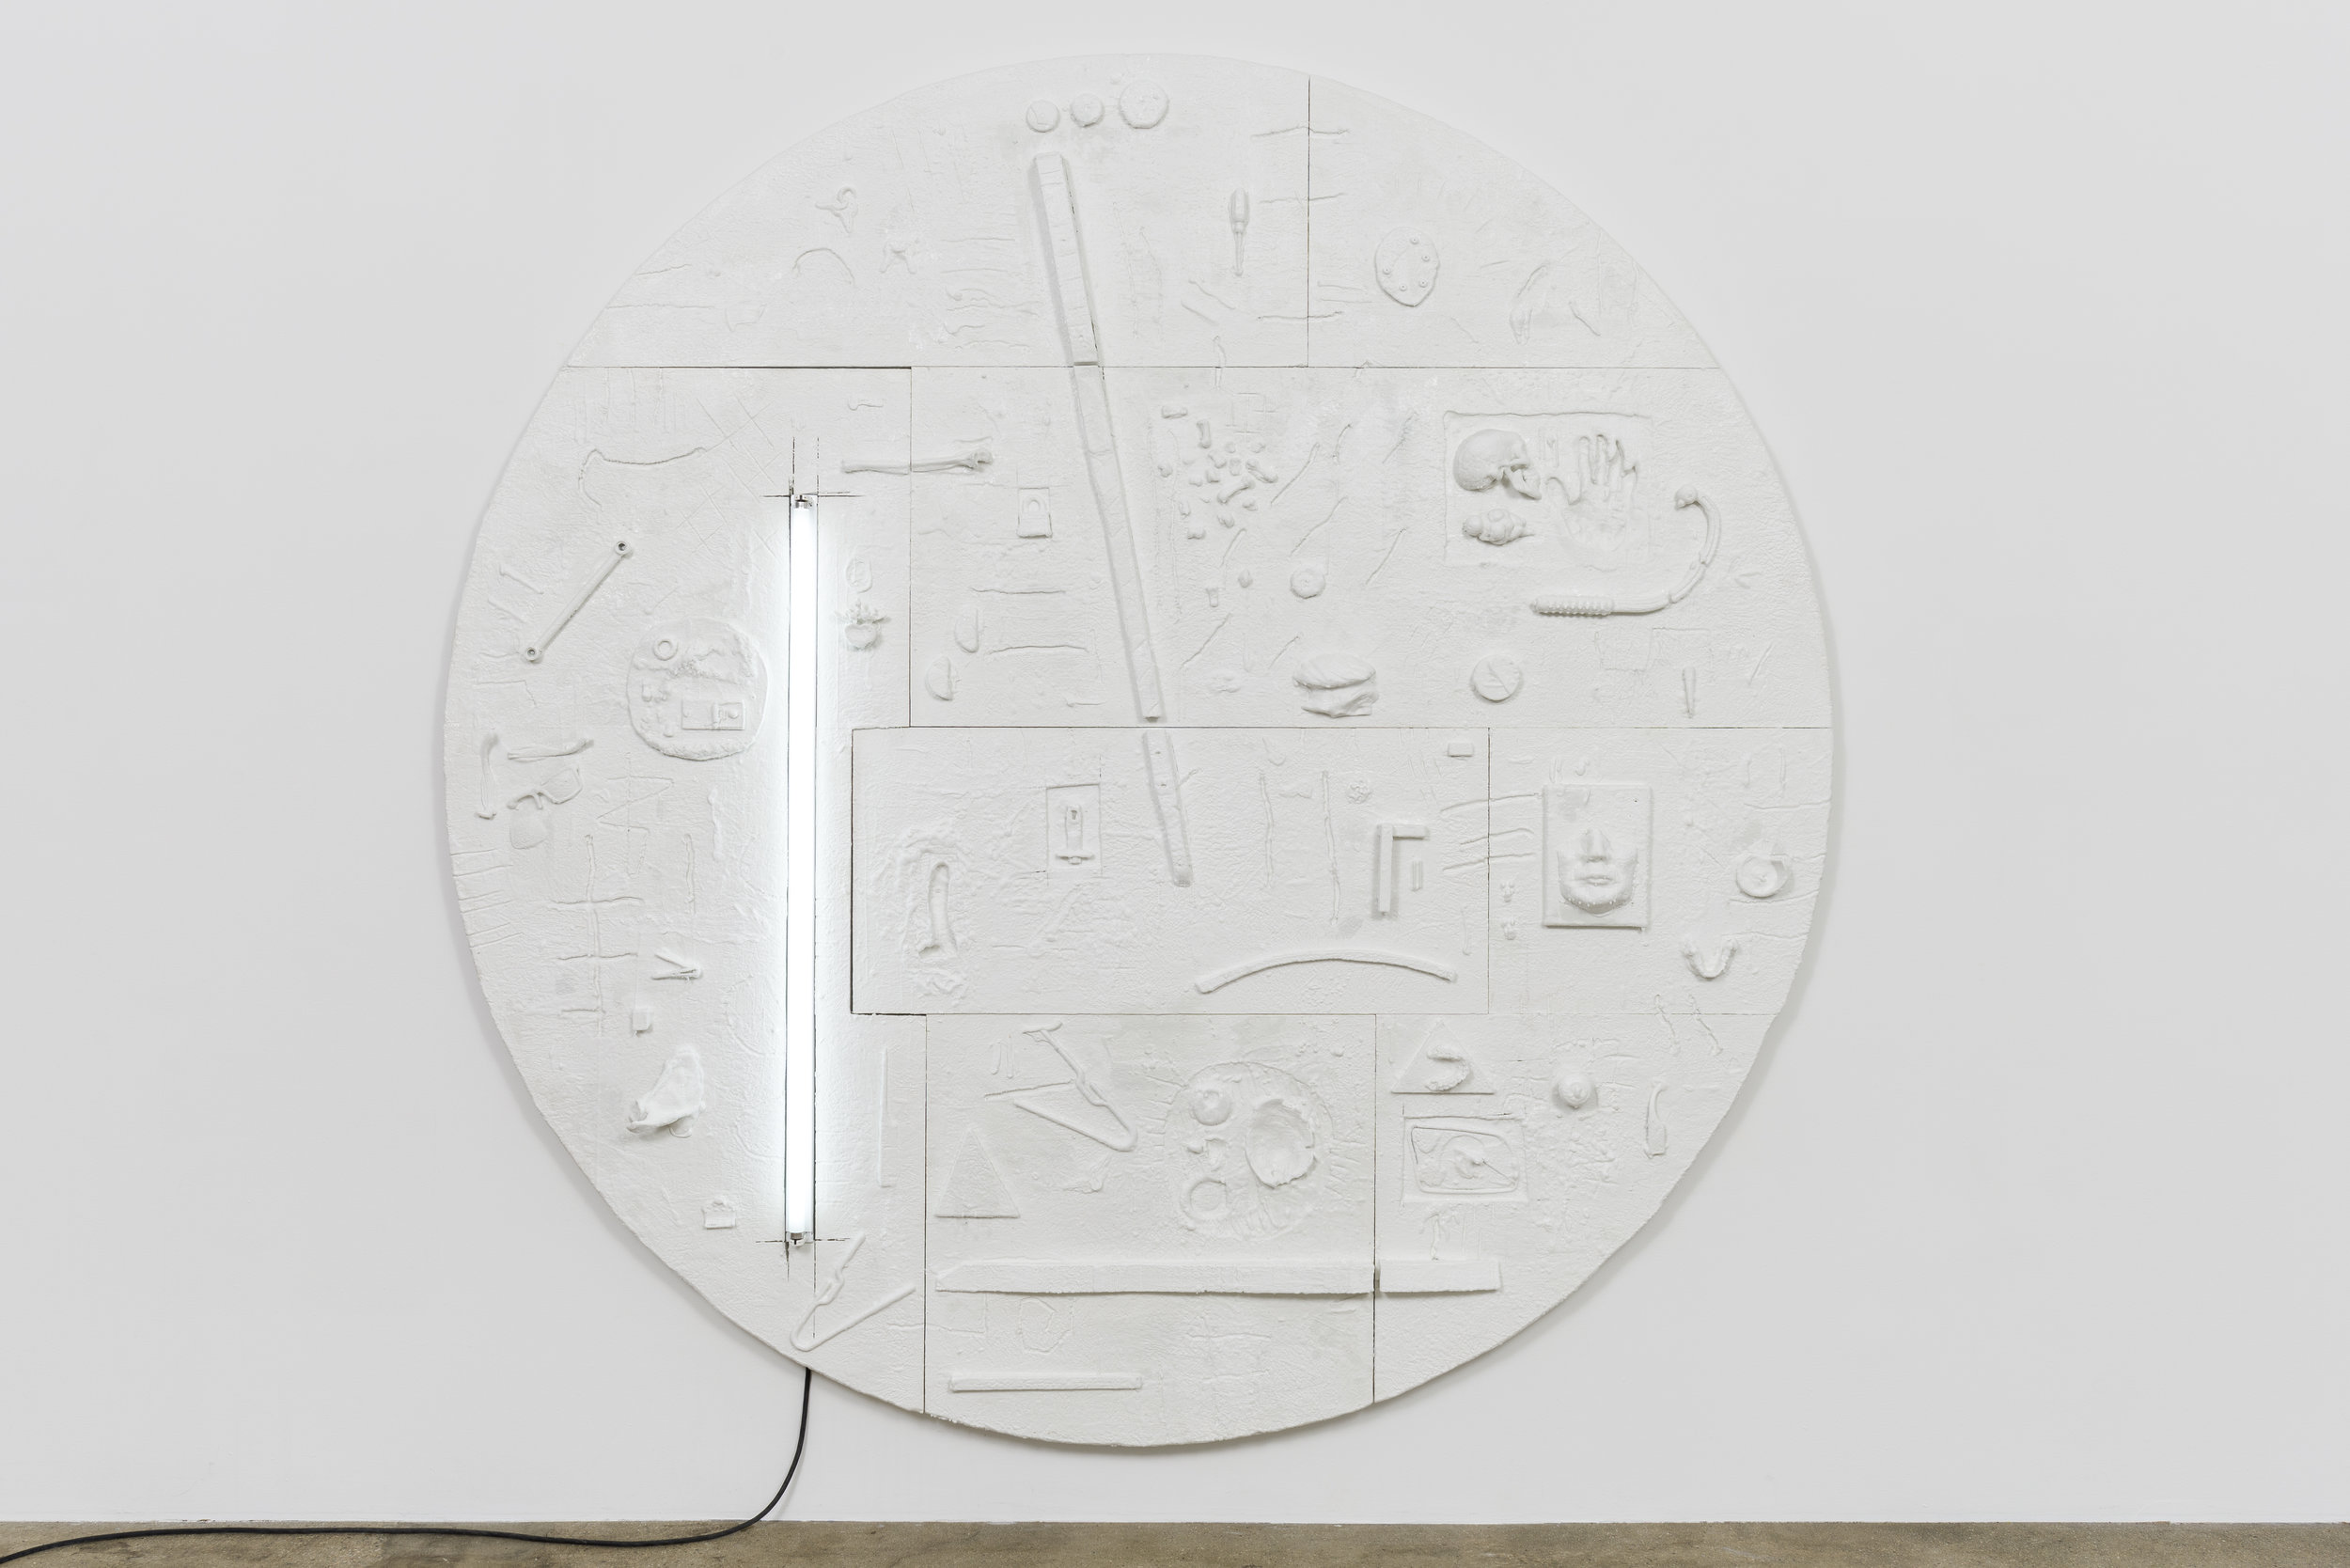 Don Edler  Two Minutes To Midnight   2017-2019 Plywood, styrofoam, plaster, miscellaneous detritus, fluorescent light, polymer paint, petroleum wax 92 in x 92 in x 3 in  Photo by Ruben Diaz